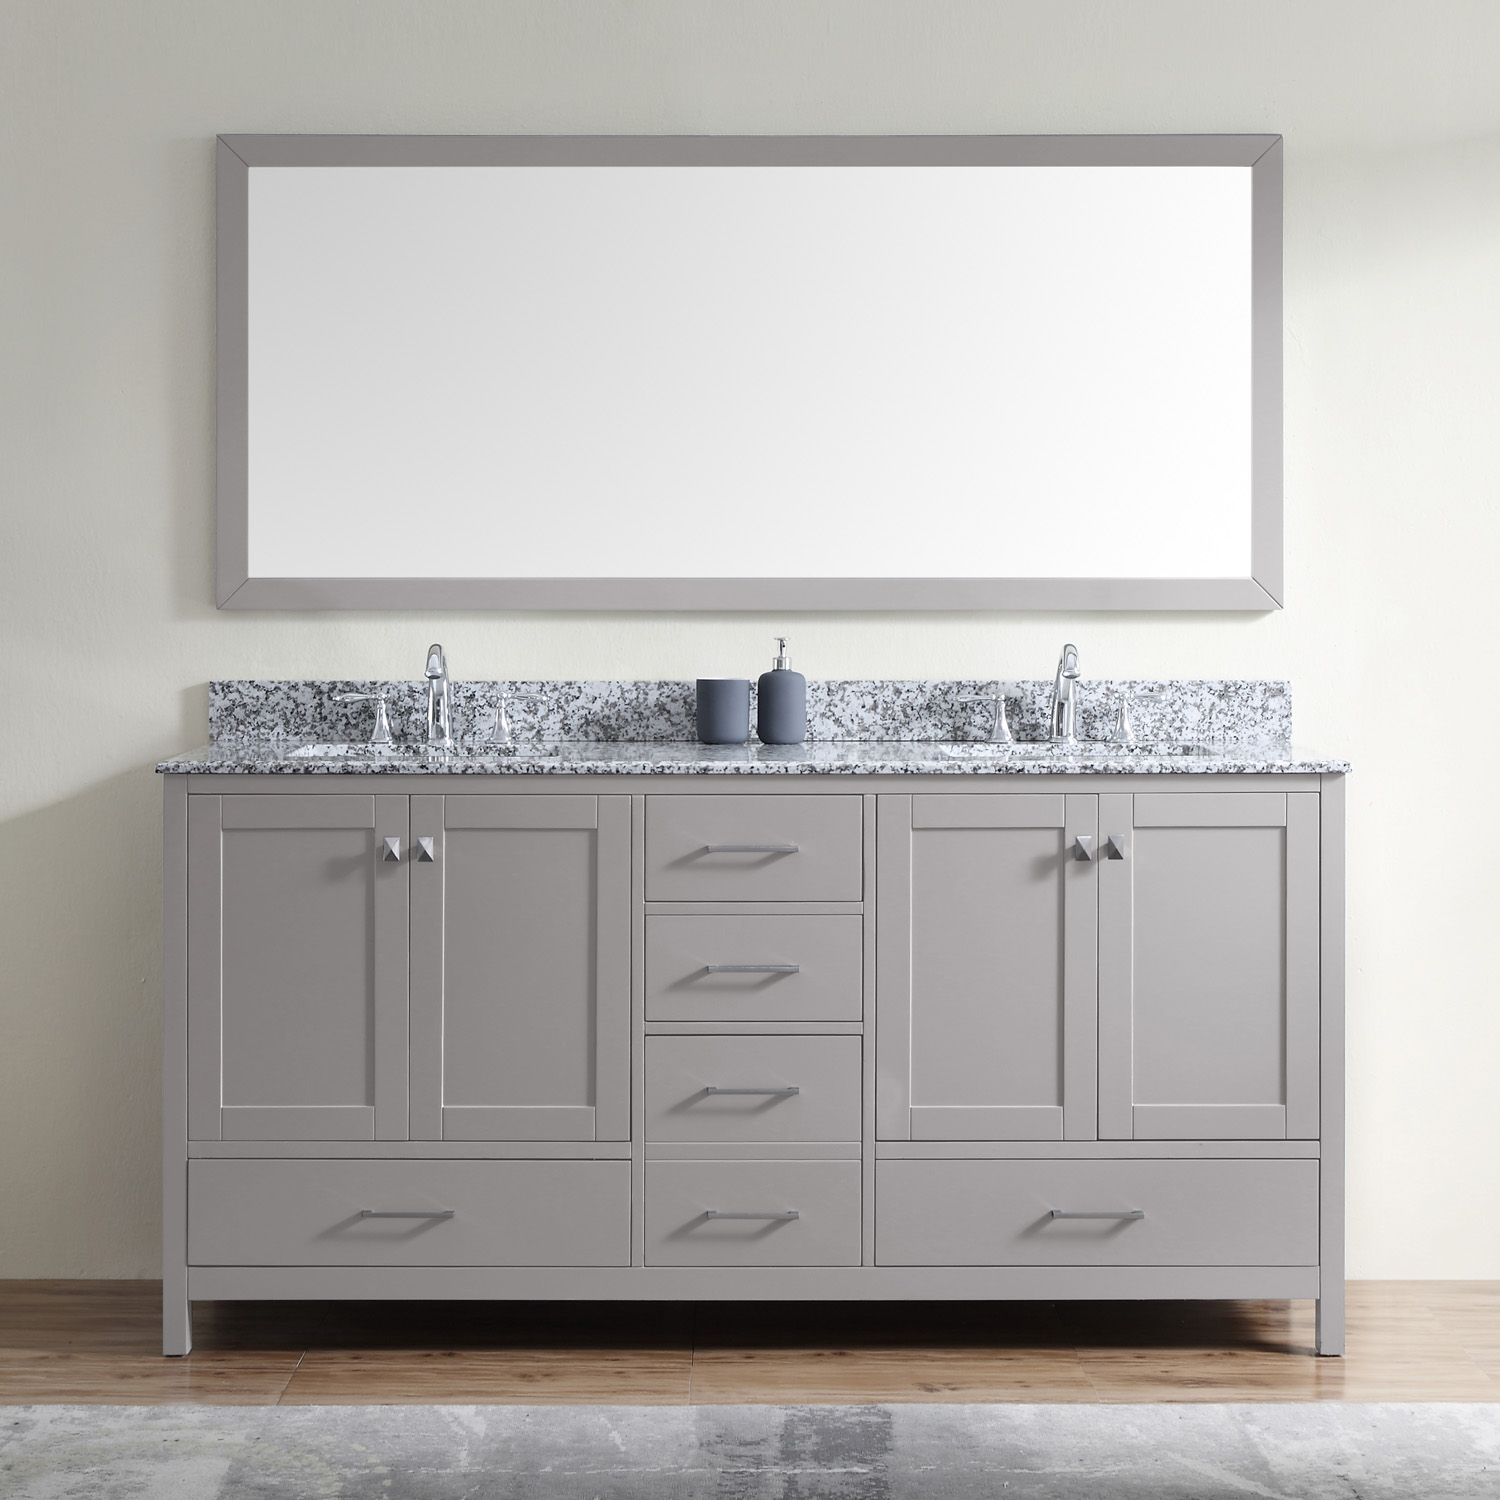 "Caroline Madison 72"" Vanity by Virtu USA - gd-28072-awsq-cg"